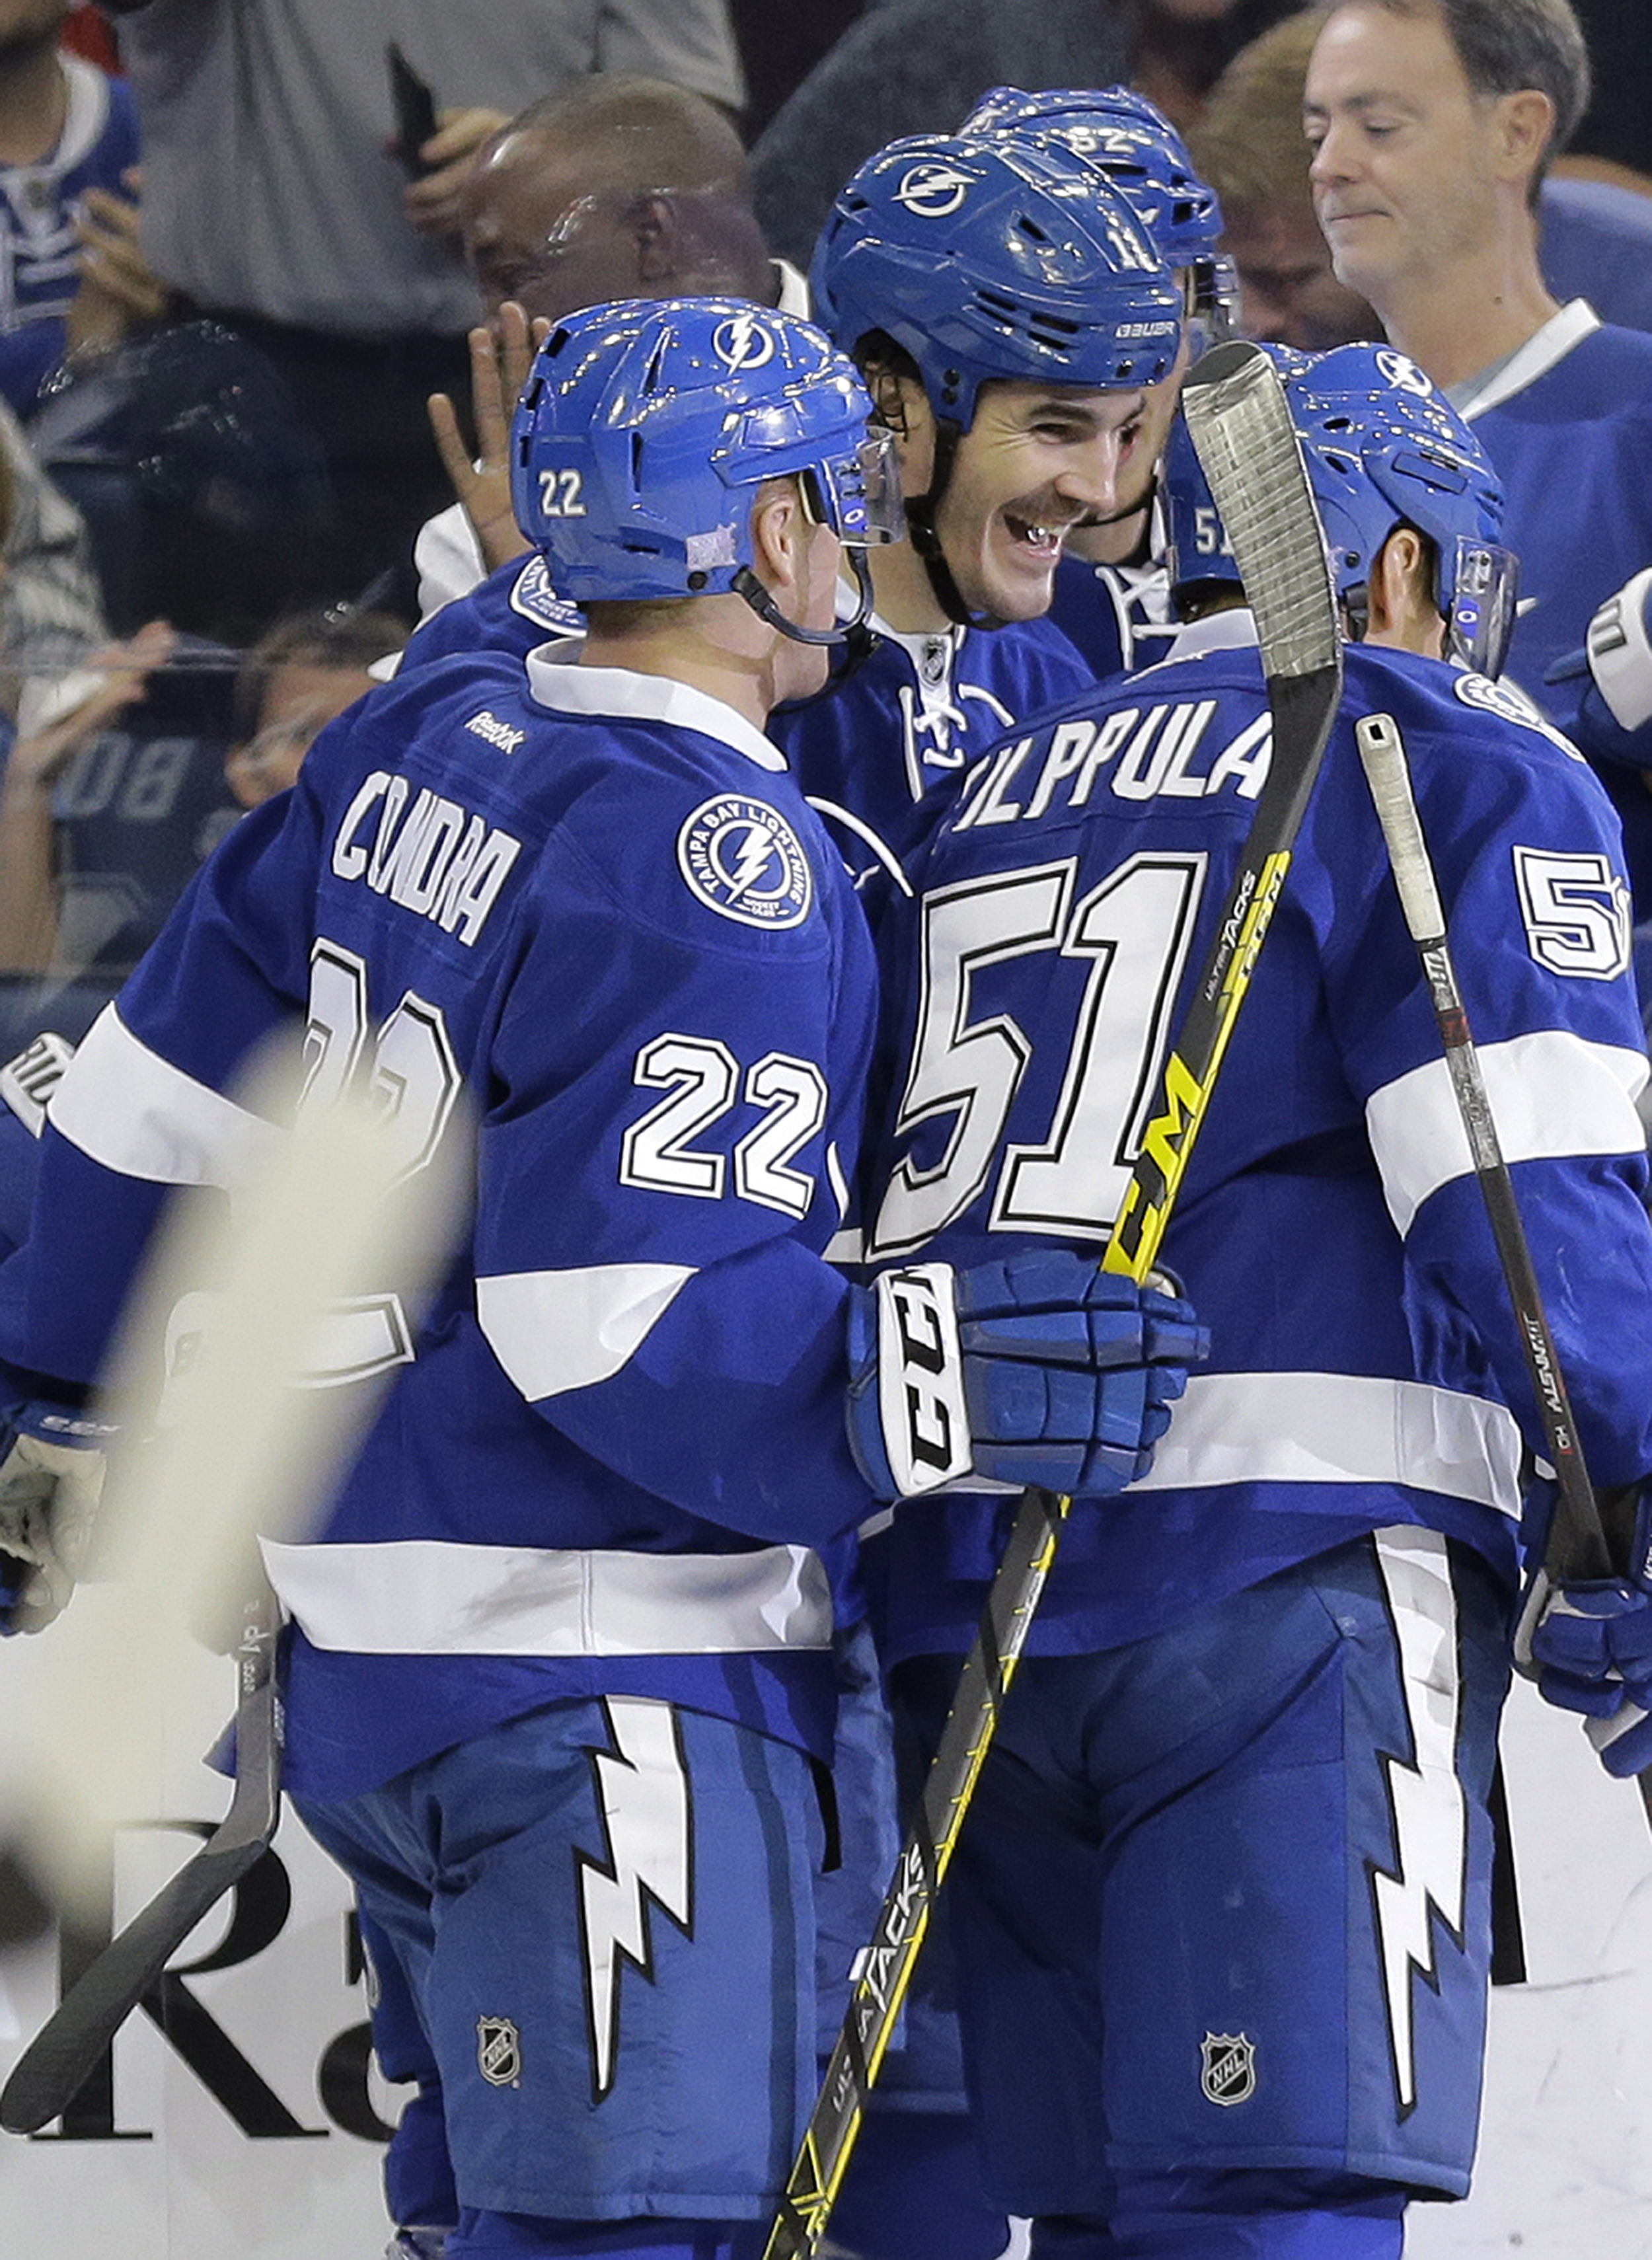 Tampa Bay Lightning center Brian Boyle (11) celebrates his goal against the Calgary Flames with right wing Erik Condra (22) and center Valtteri Filppula (51), of Finland, during the second period of an NHL hockey game Thursday, Nov. 12, 2015, in Tampa, Fl